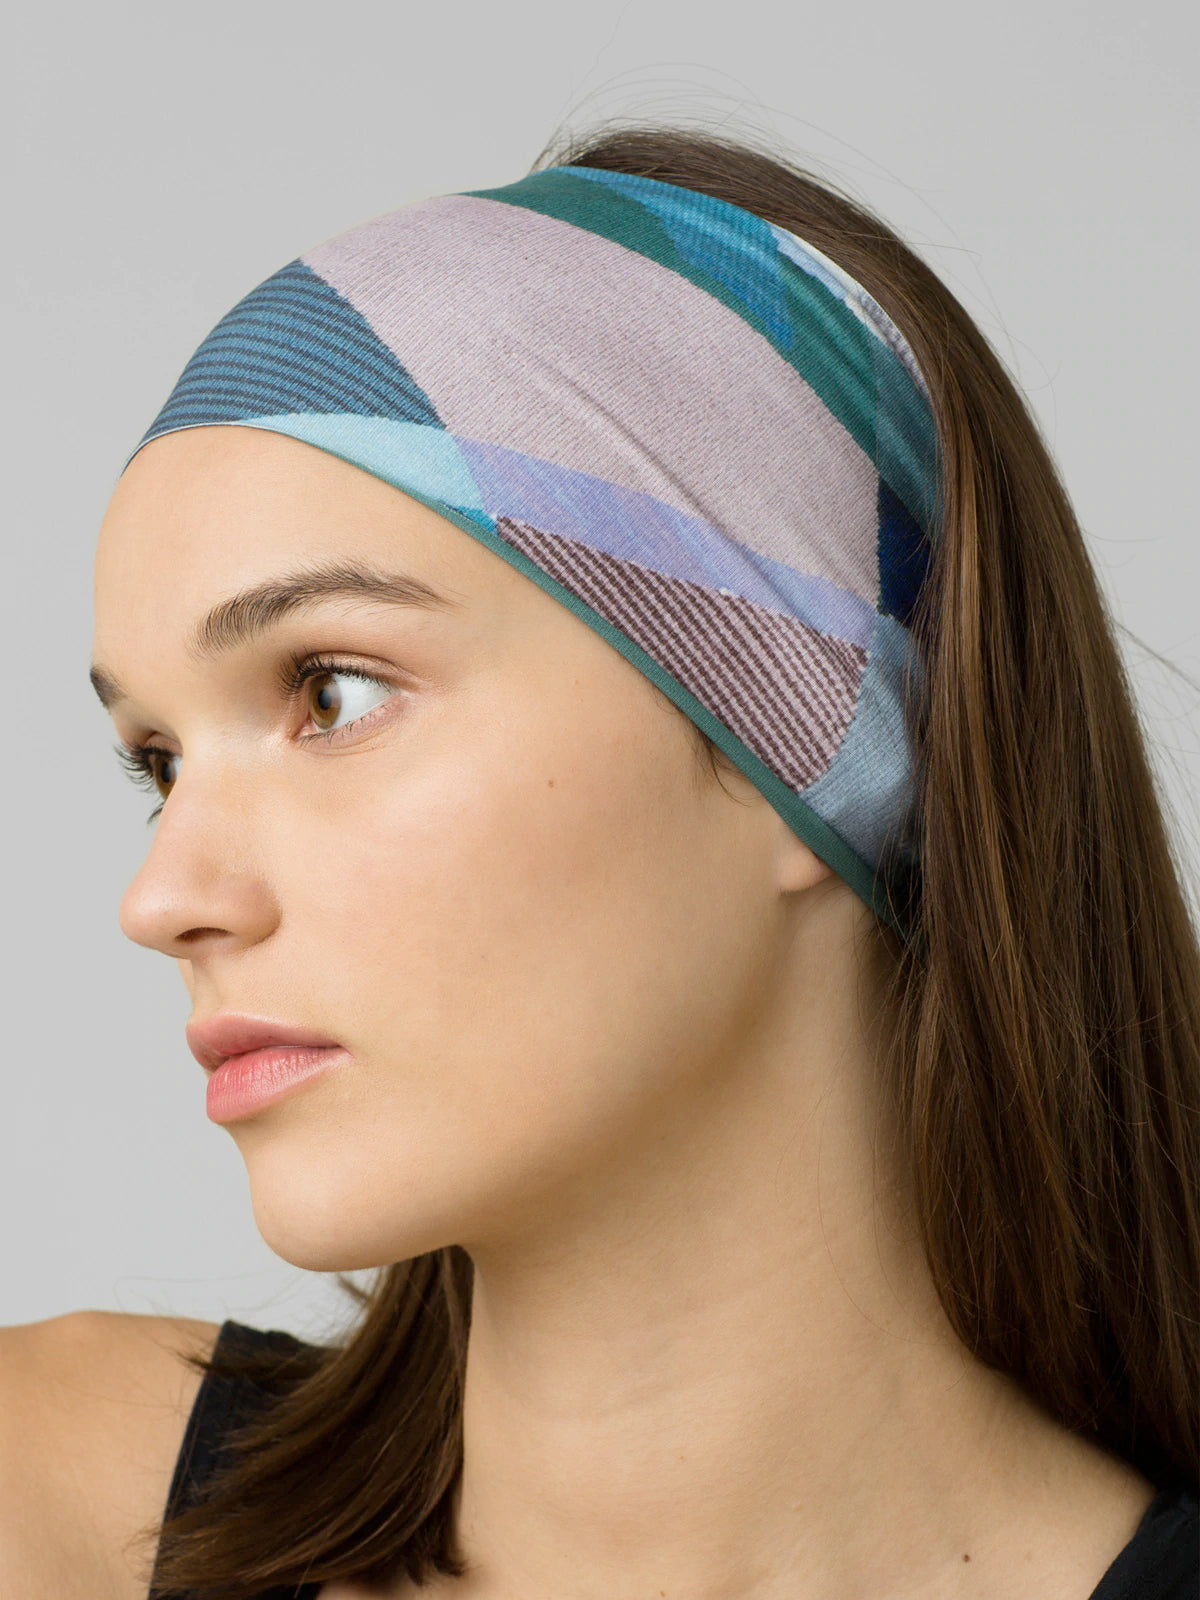 PrAna Large Headband - Peacock Mixer